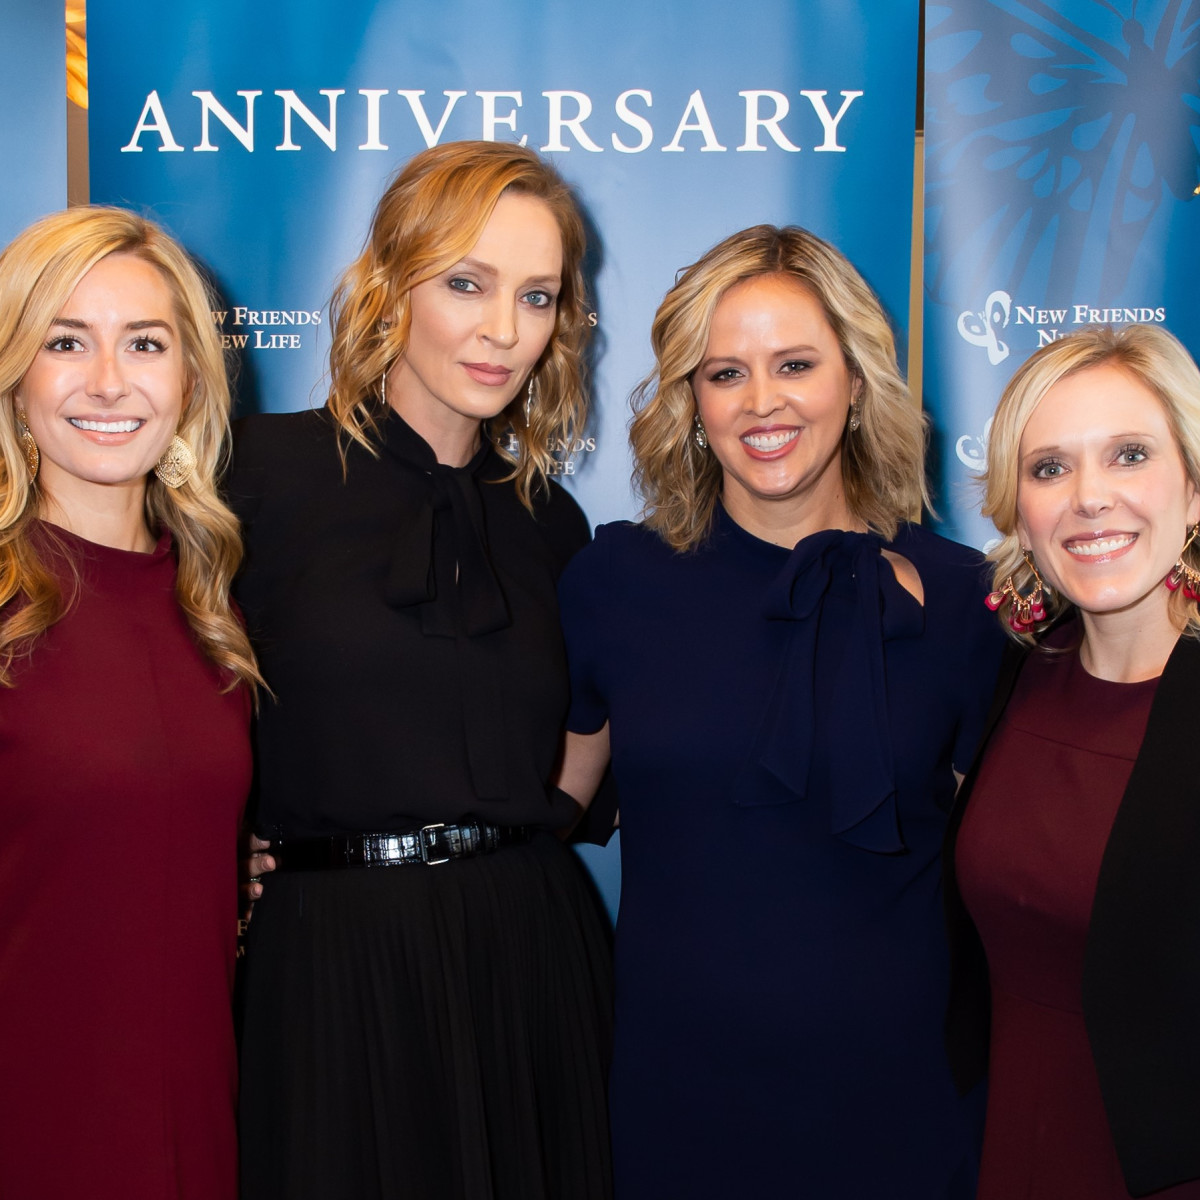 Connie Kleinert Babikian, Uma Thurman, McCall Cravens, Jill Meyer